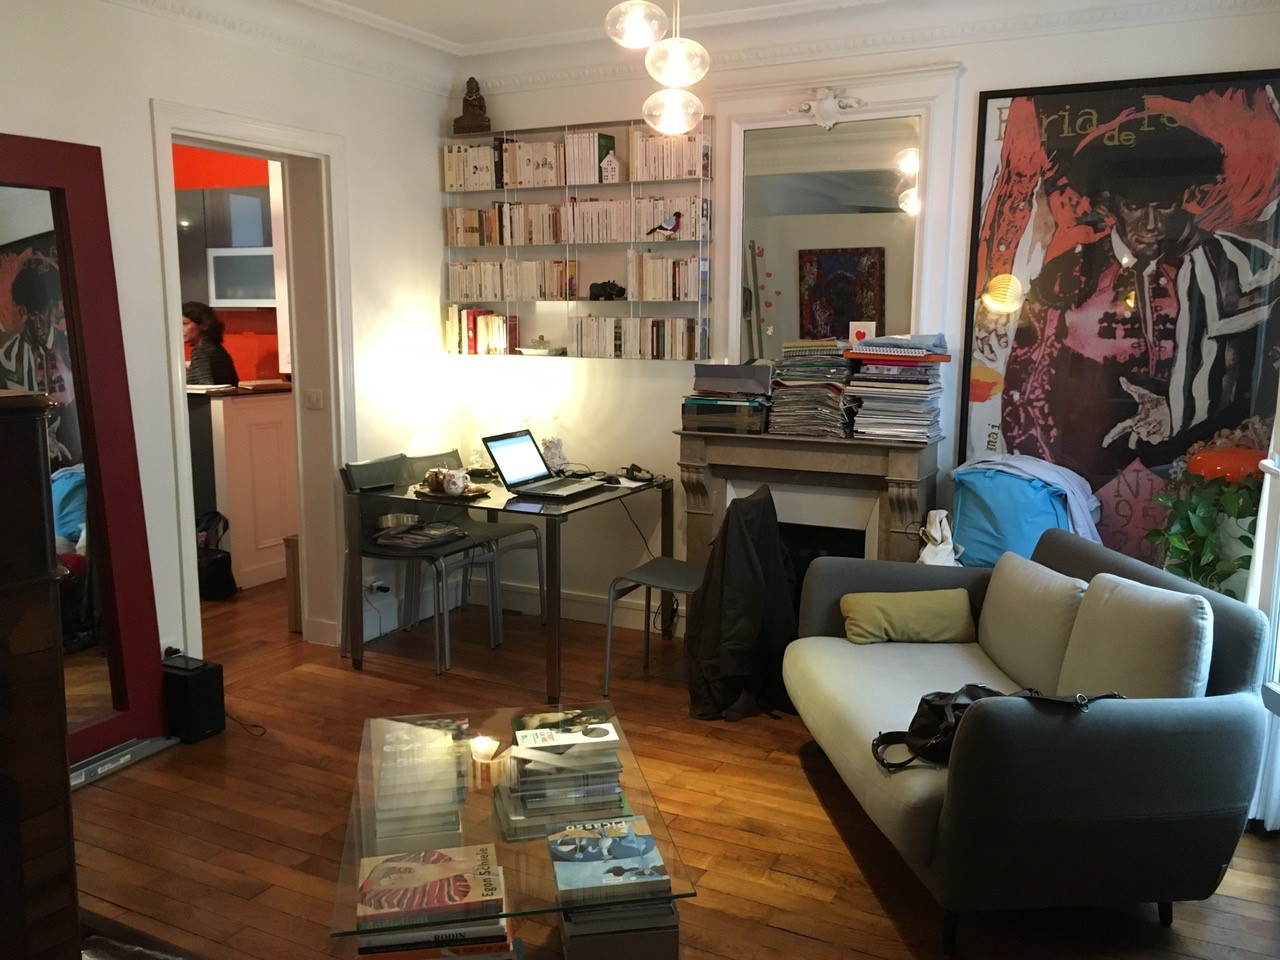 49 Rue d'Orsel,Paris,75018,1 Bedroom Bedrooms,1 BathroomBathrooms,Appartement,Rue d'Orsel,4,1001